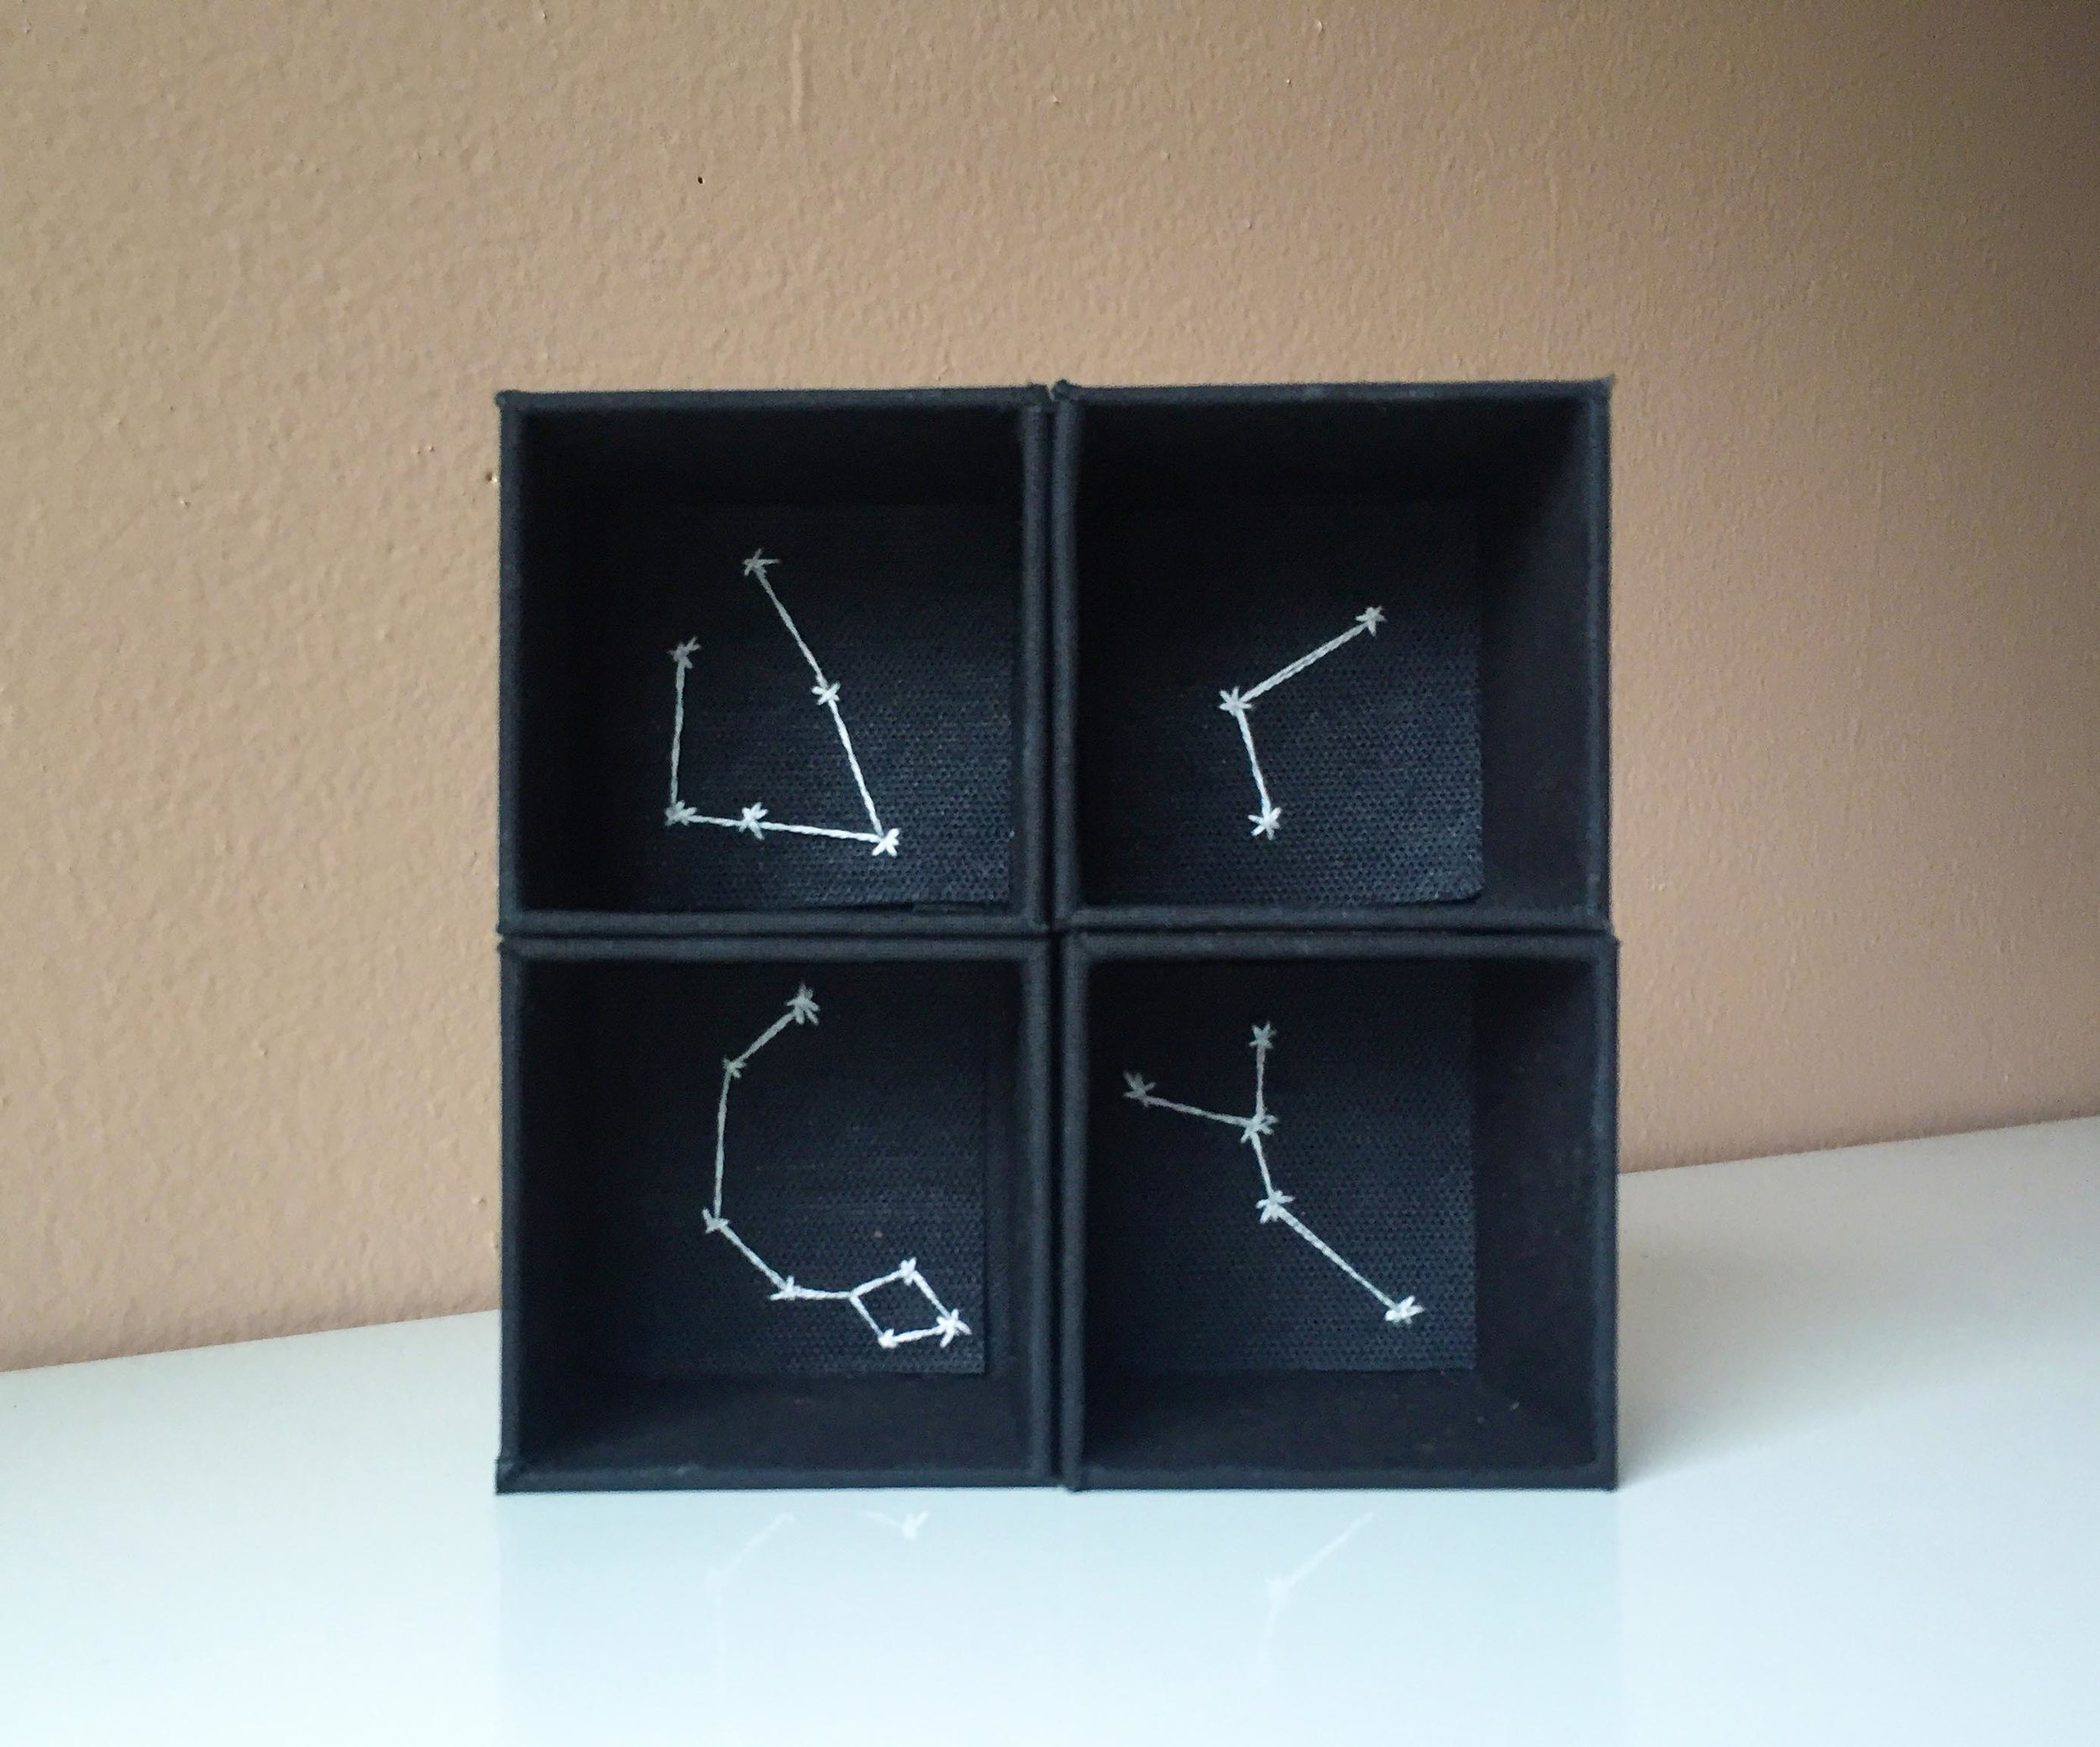 Little Boxes - Imaginary Constellations